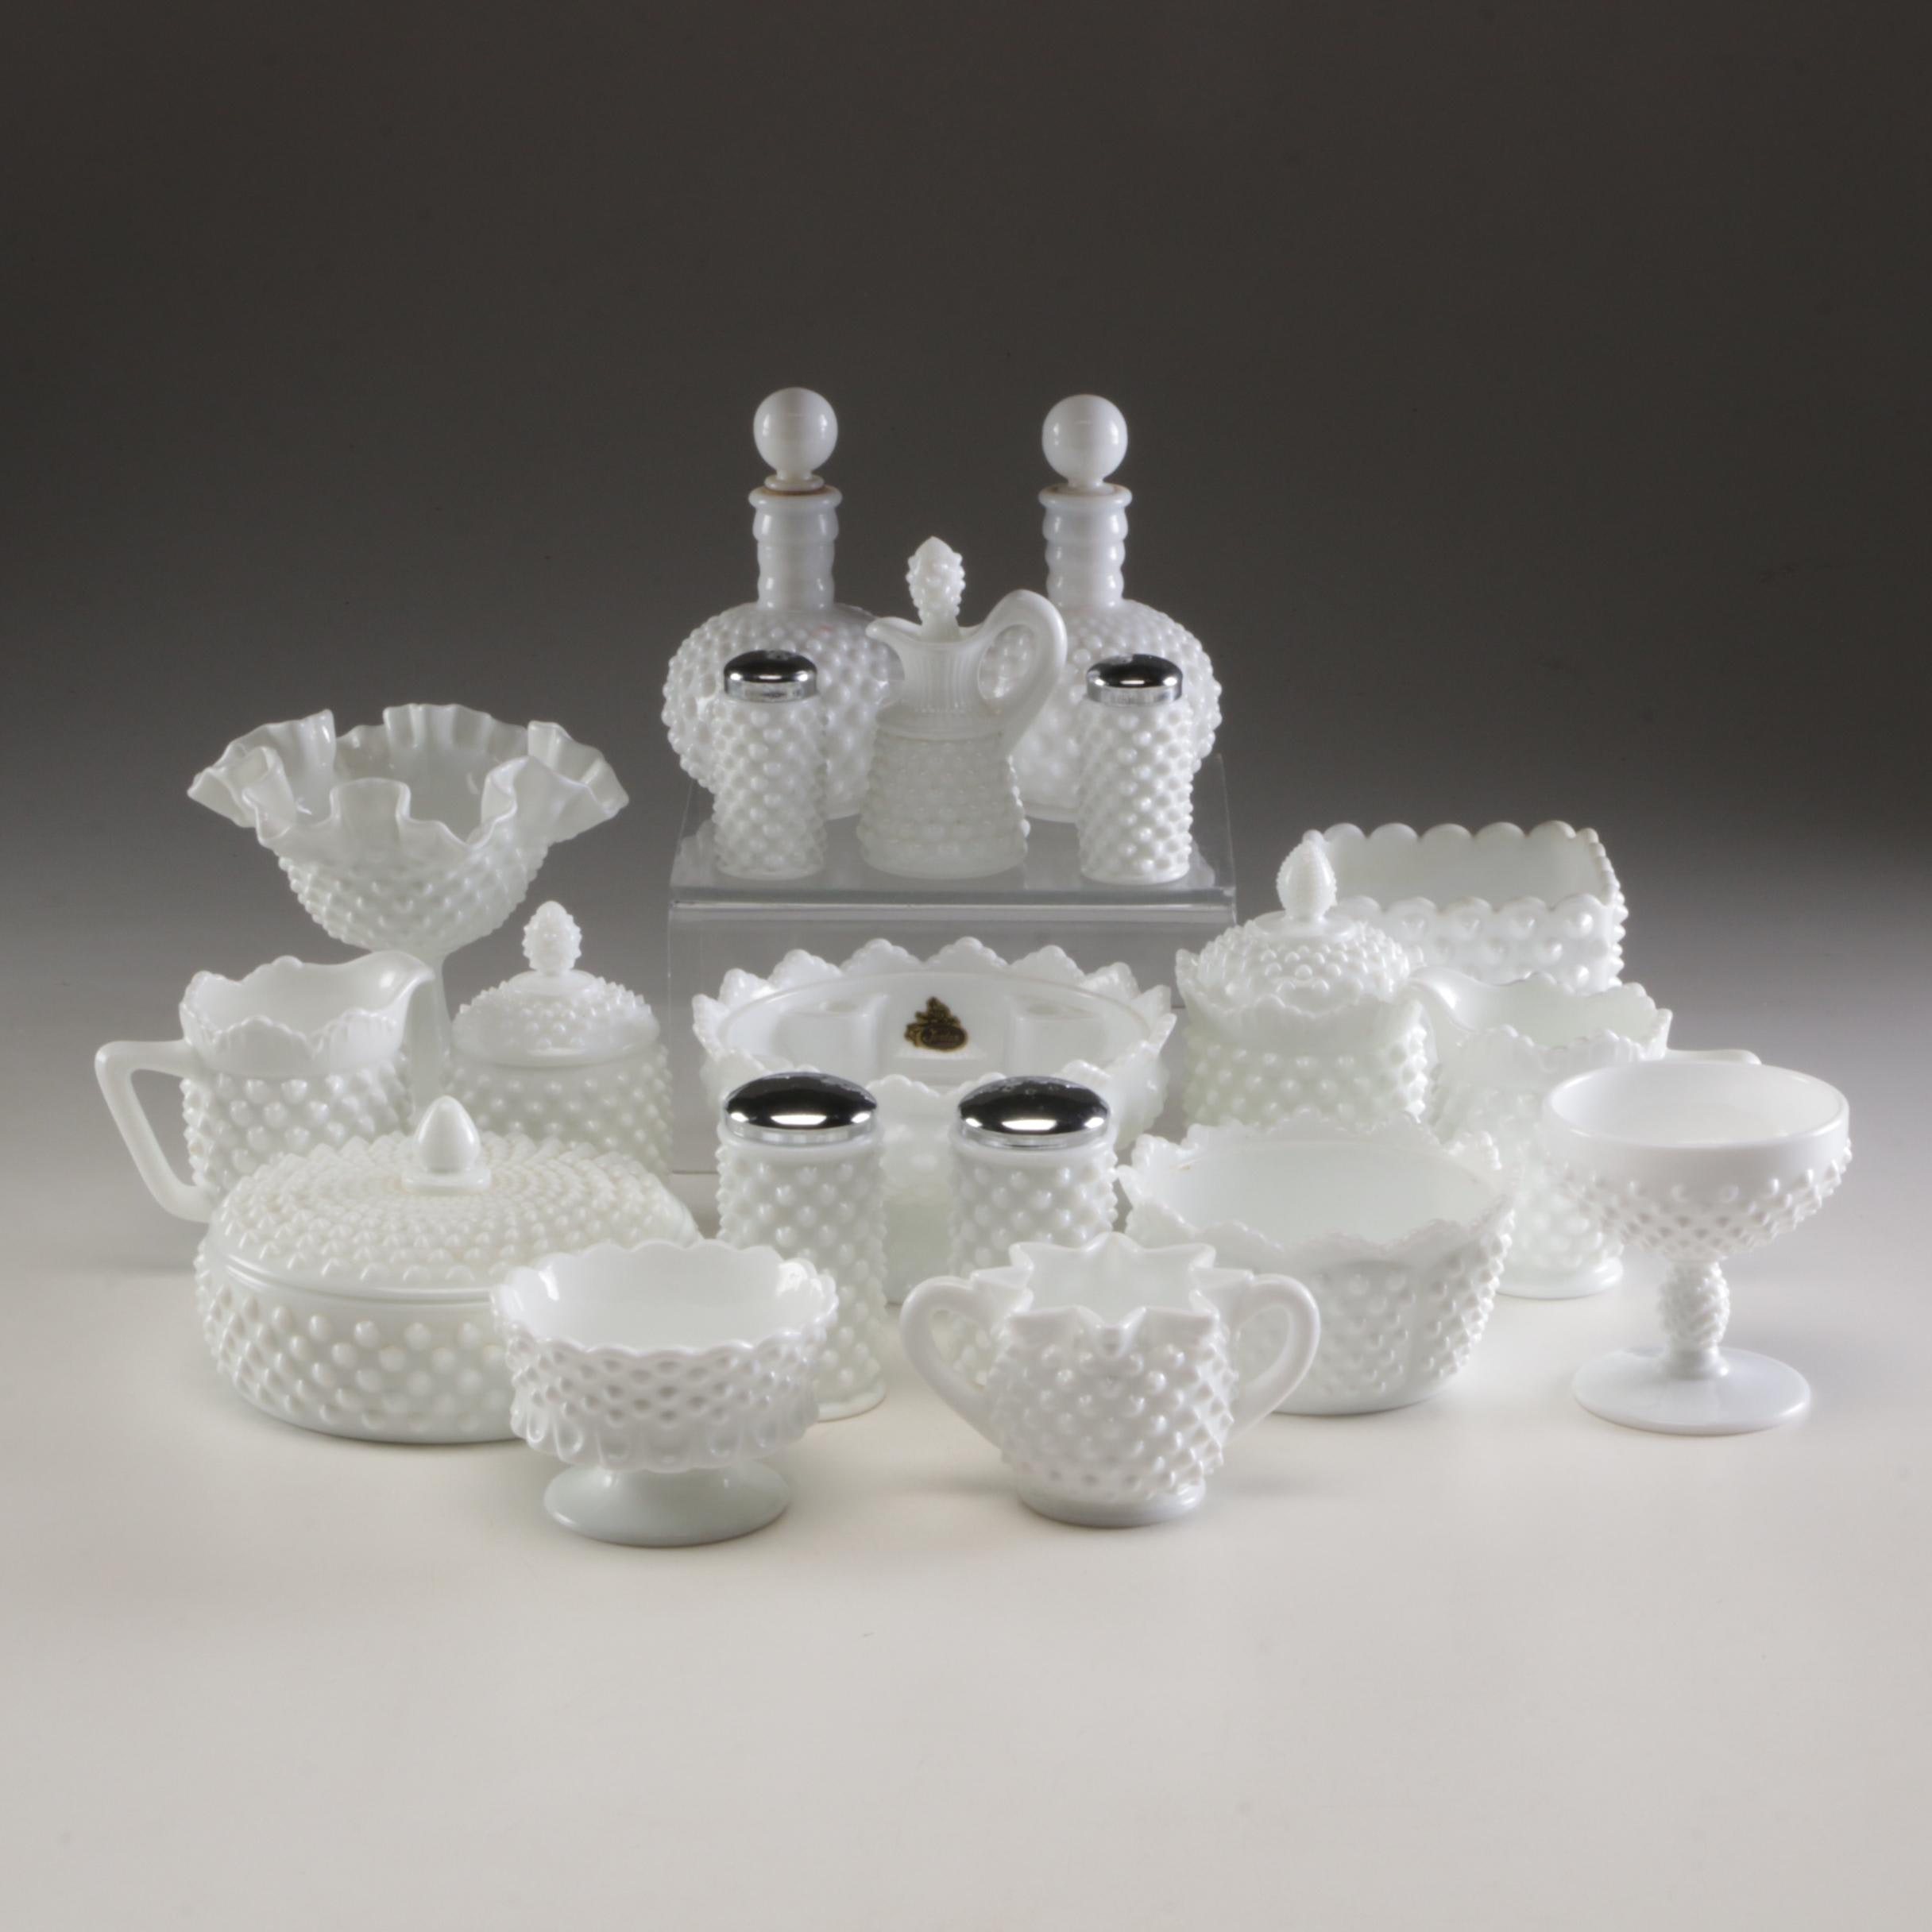 Grouping of Fenton Milk Glass Hobnail Tableware